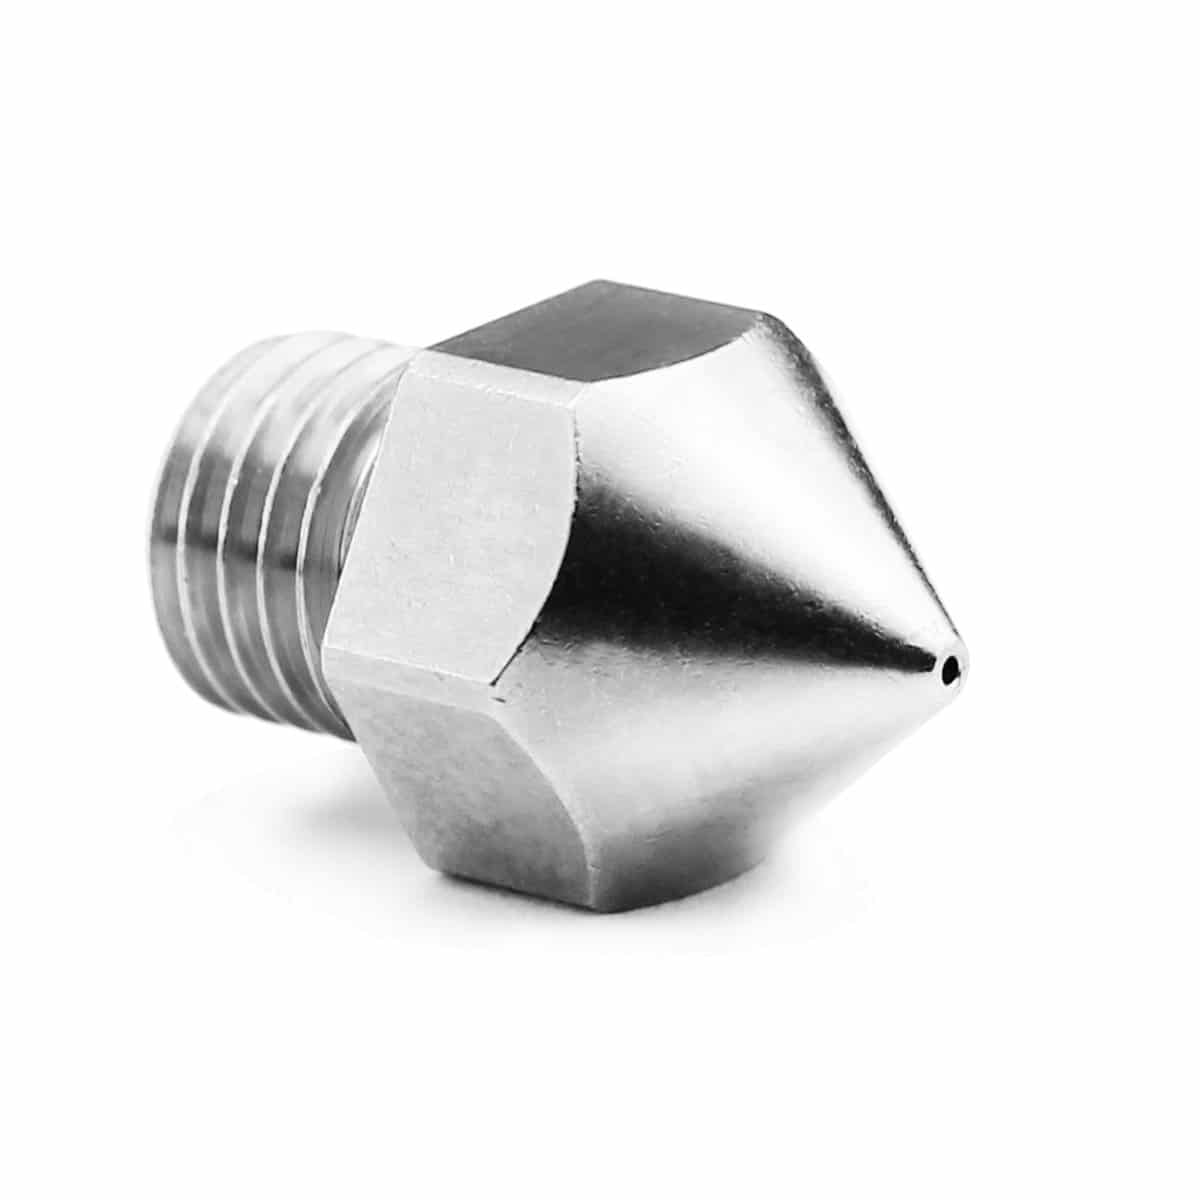 Image of Micro Swiss Plated Wear Resistant Nozzle for Creality CR-10s PRO - 0.40mm